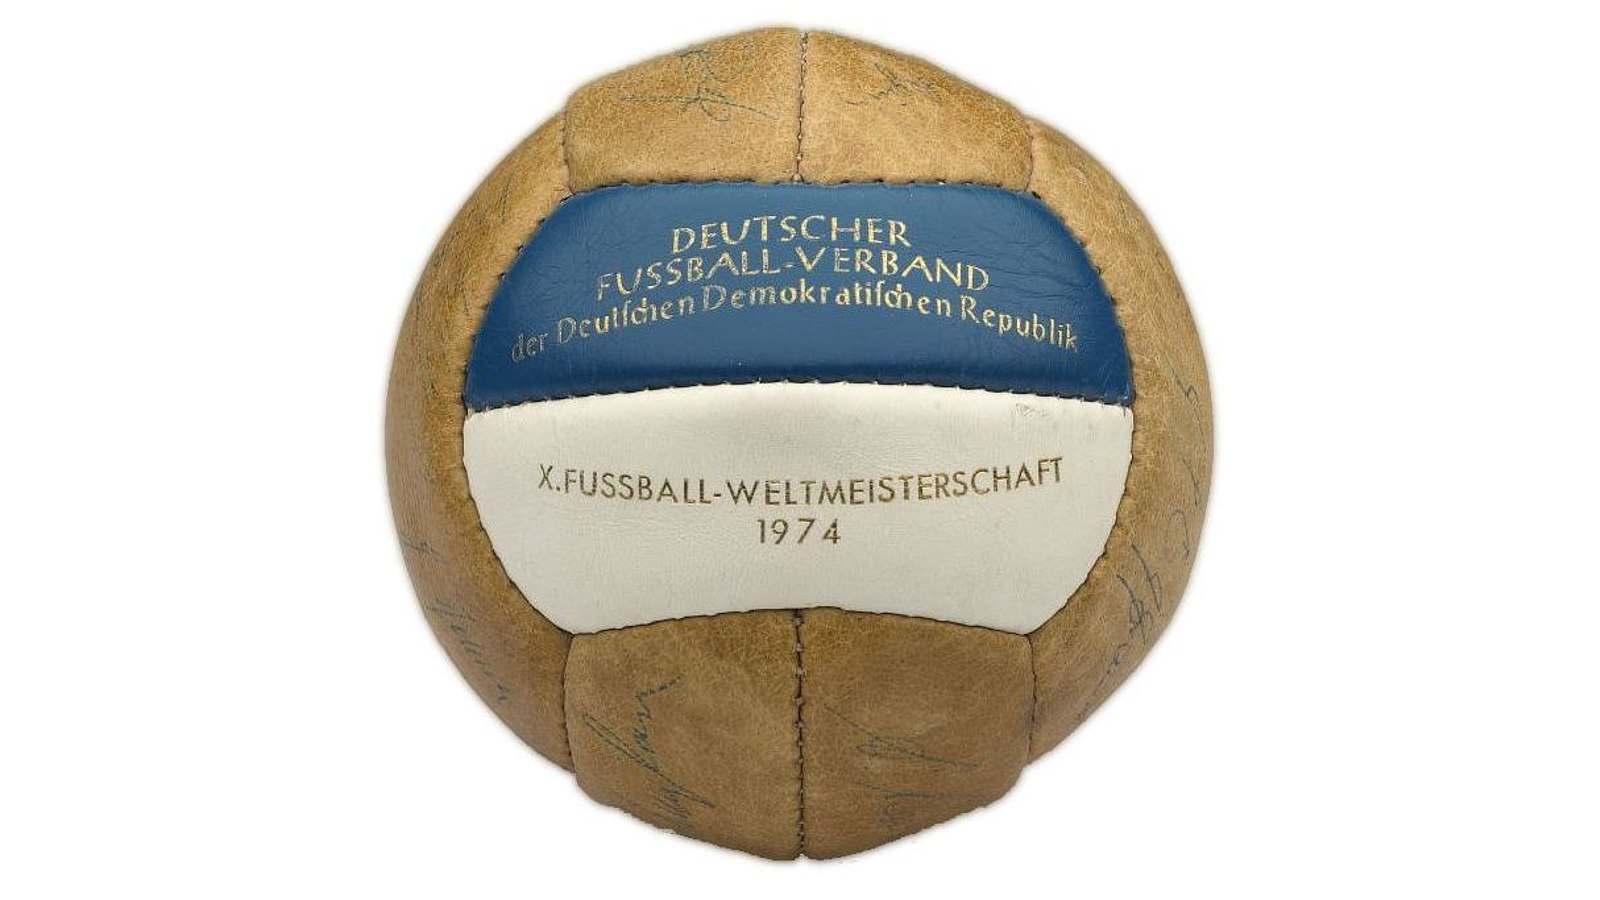 Football with autographs of the GDR World Cup Team 1974